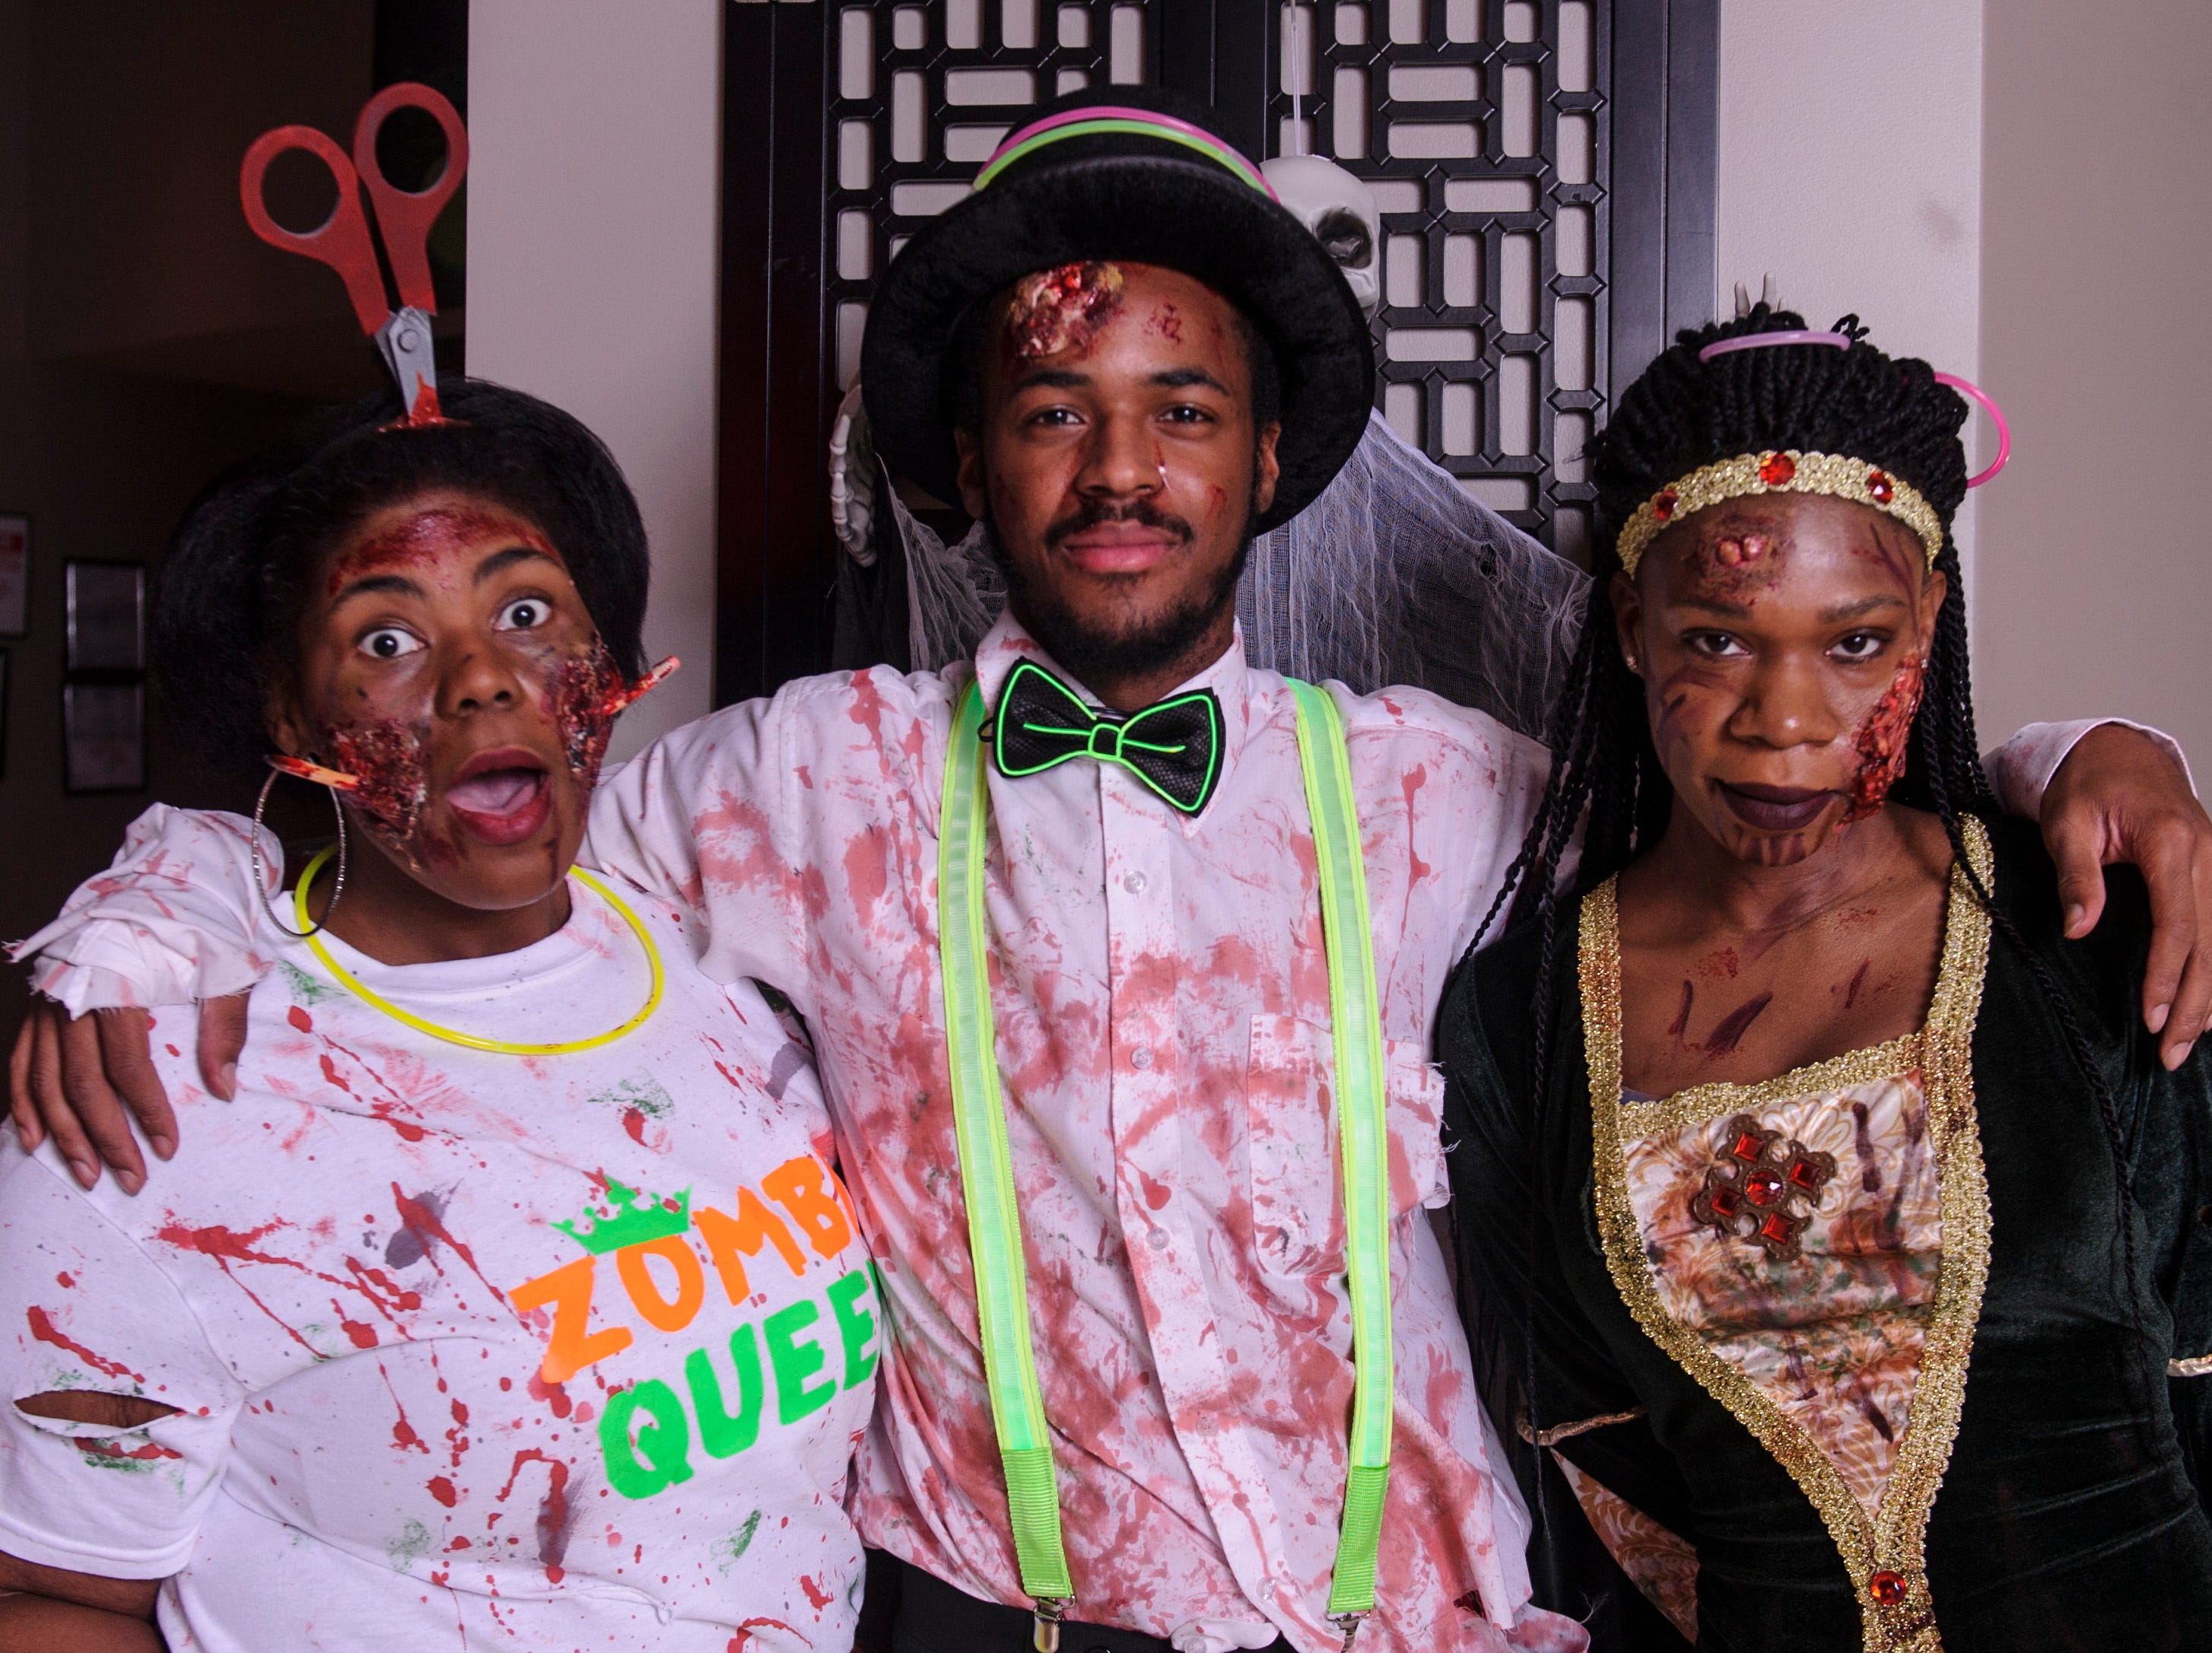 Domnique Morris, Lushawn Lyons, and Gyneva Benndan at the Zombie Prom on Saturday, Oct. 20, 2018.